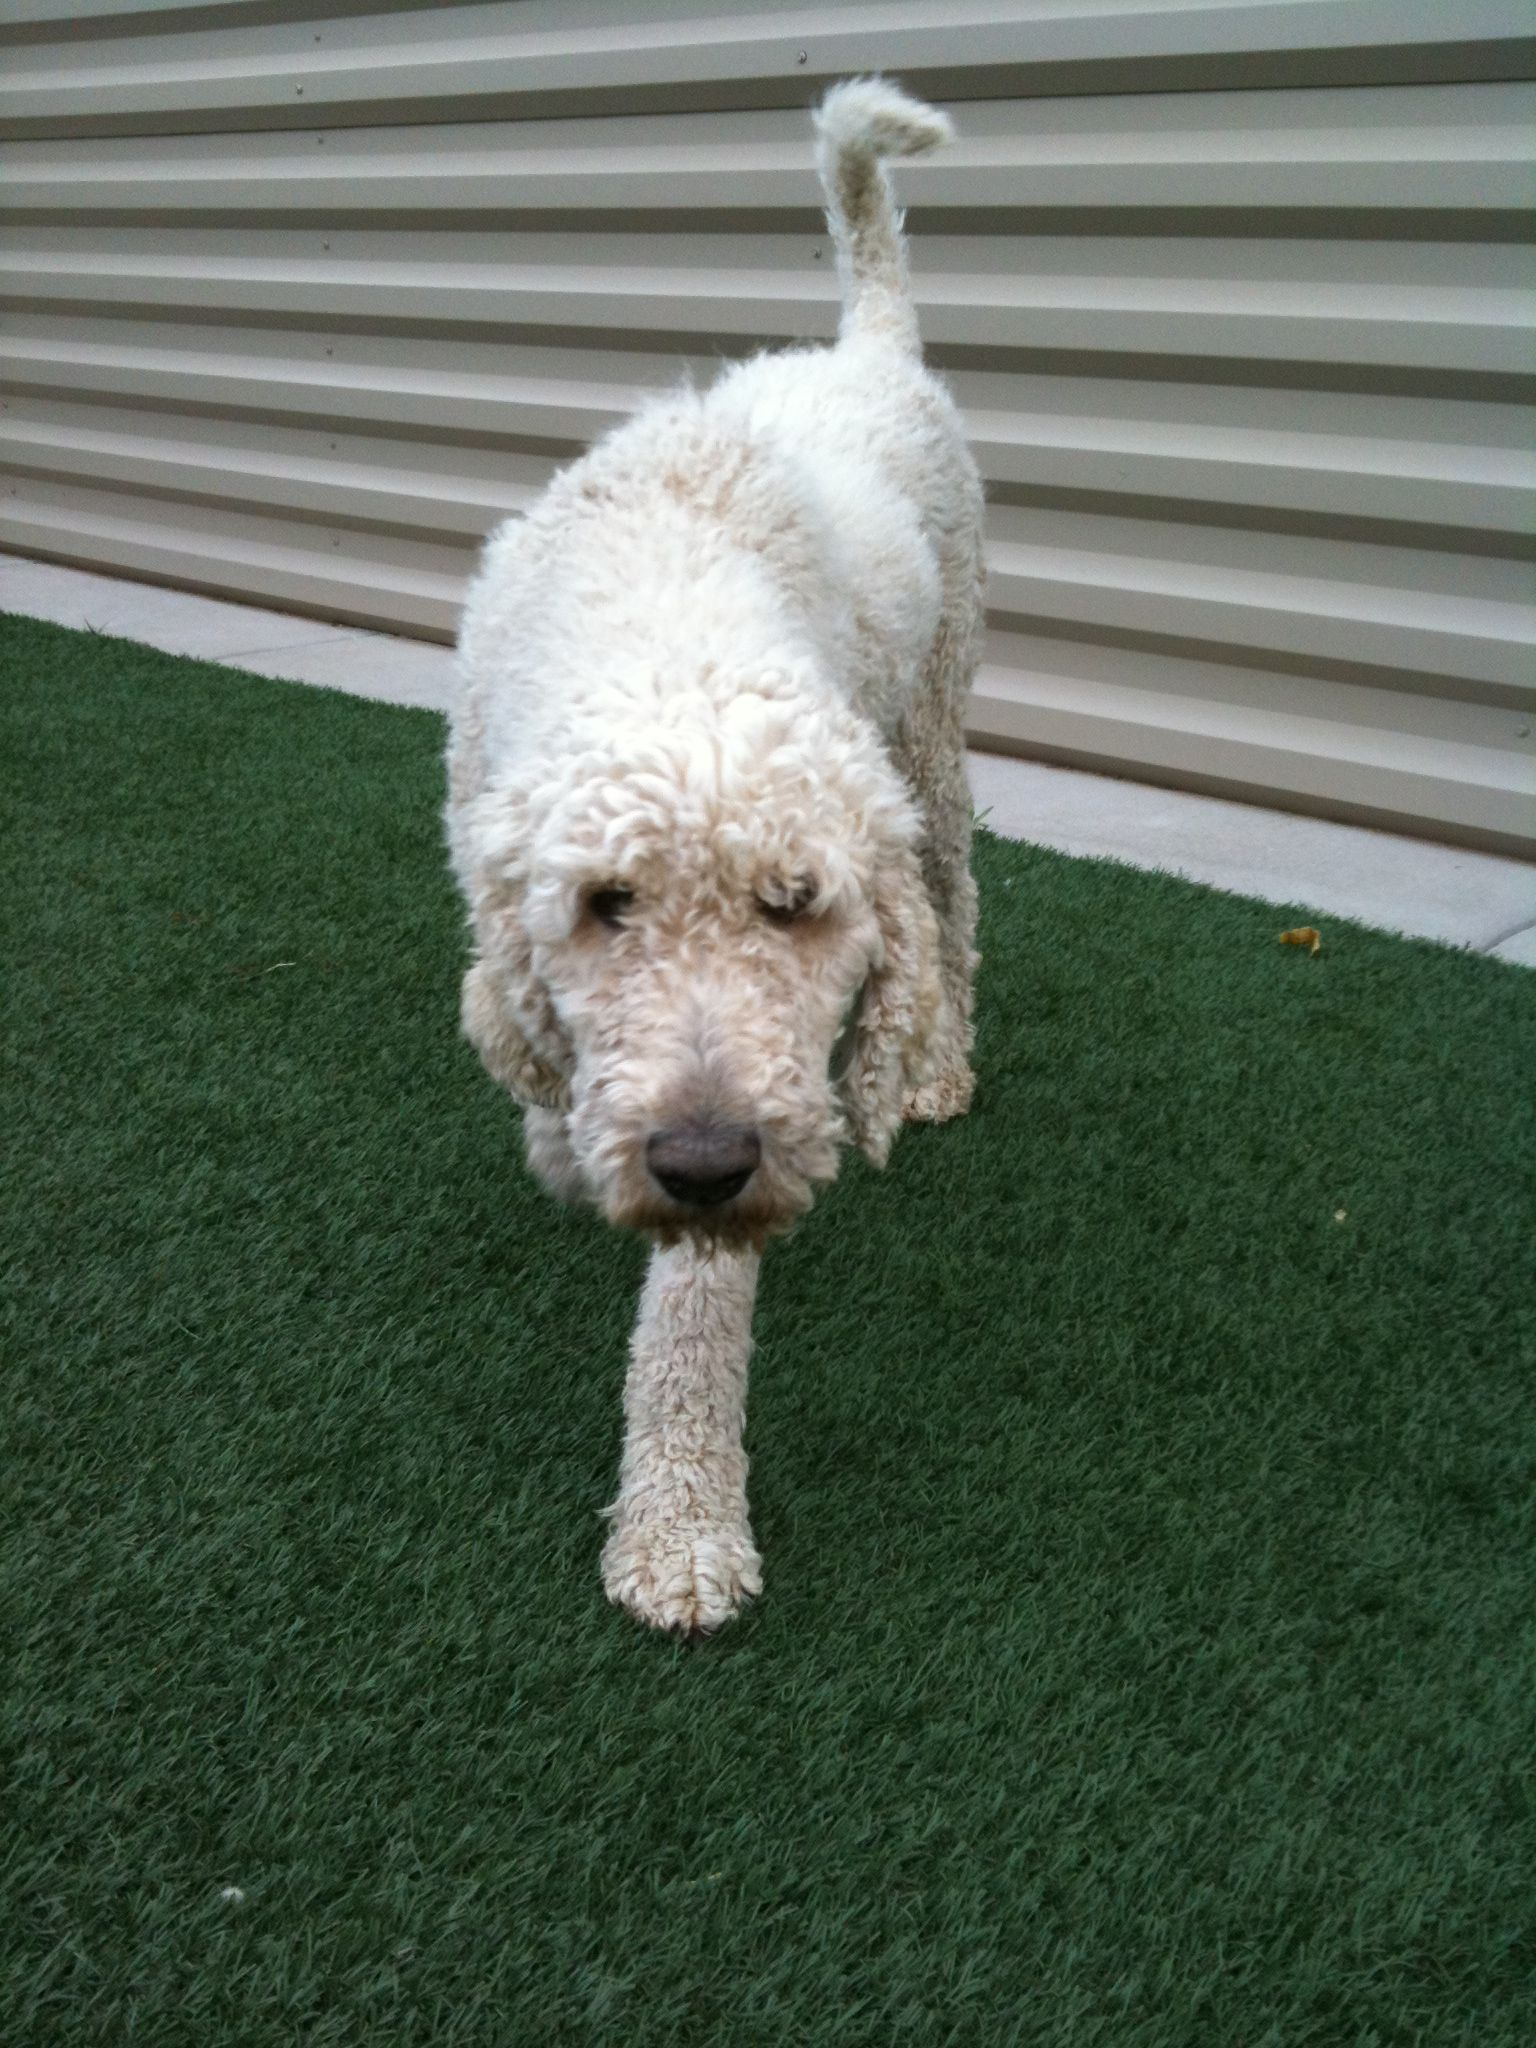 Rin Tin Tin Is A Pure Bred Standard Poodle Up For Adoption At